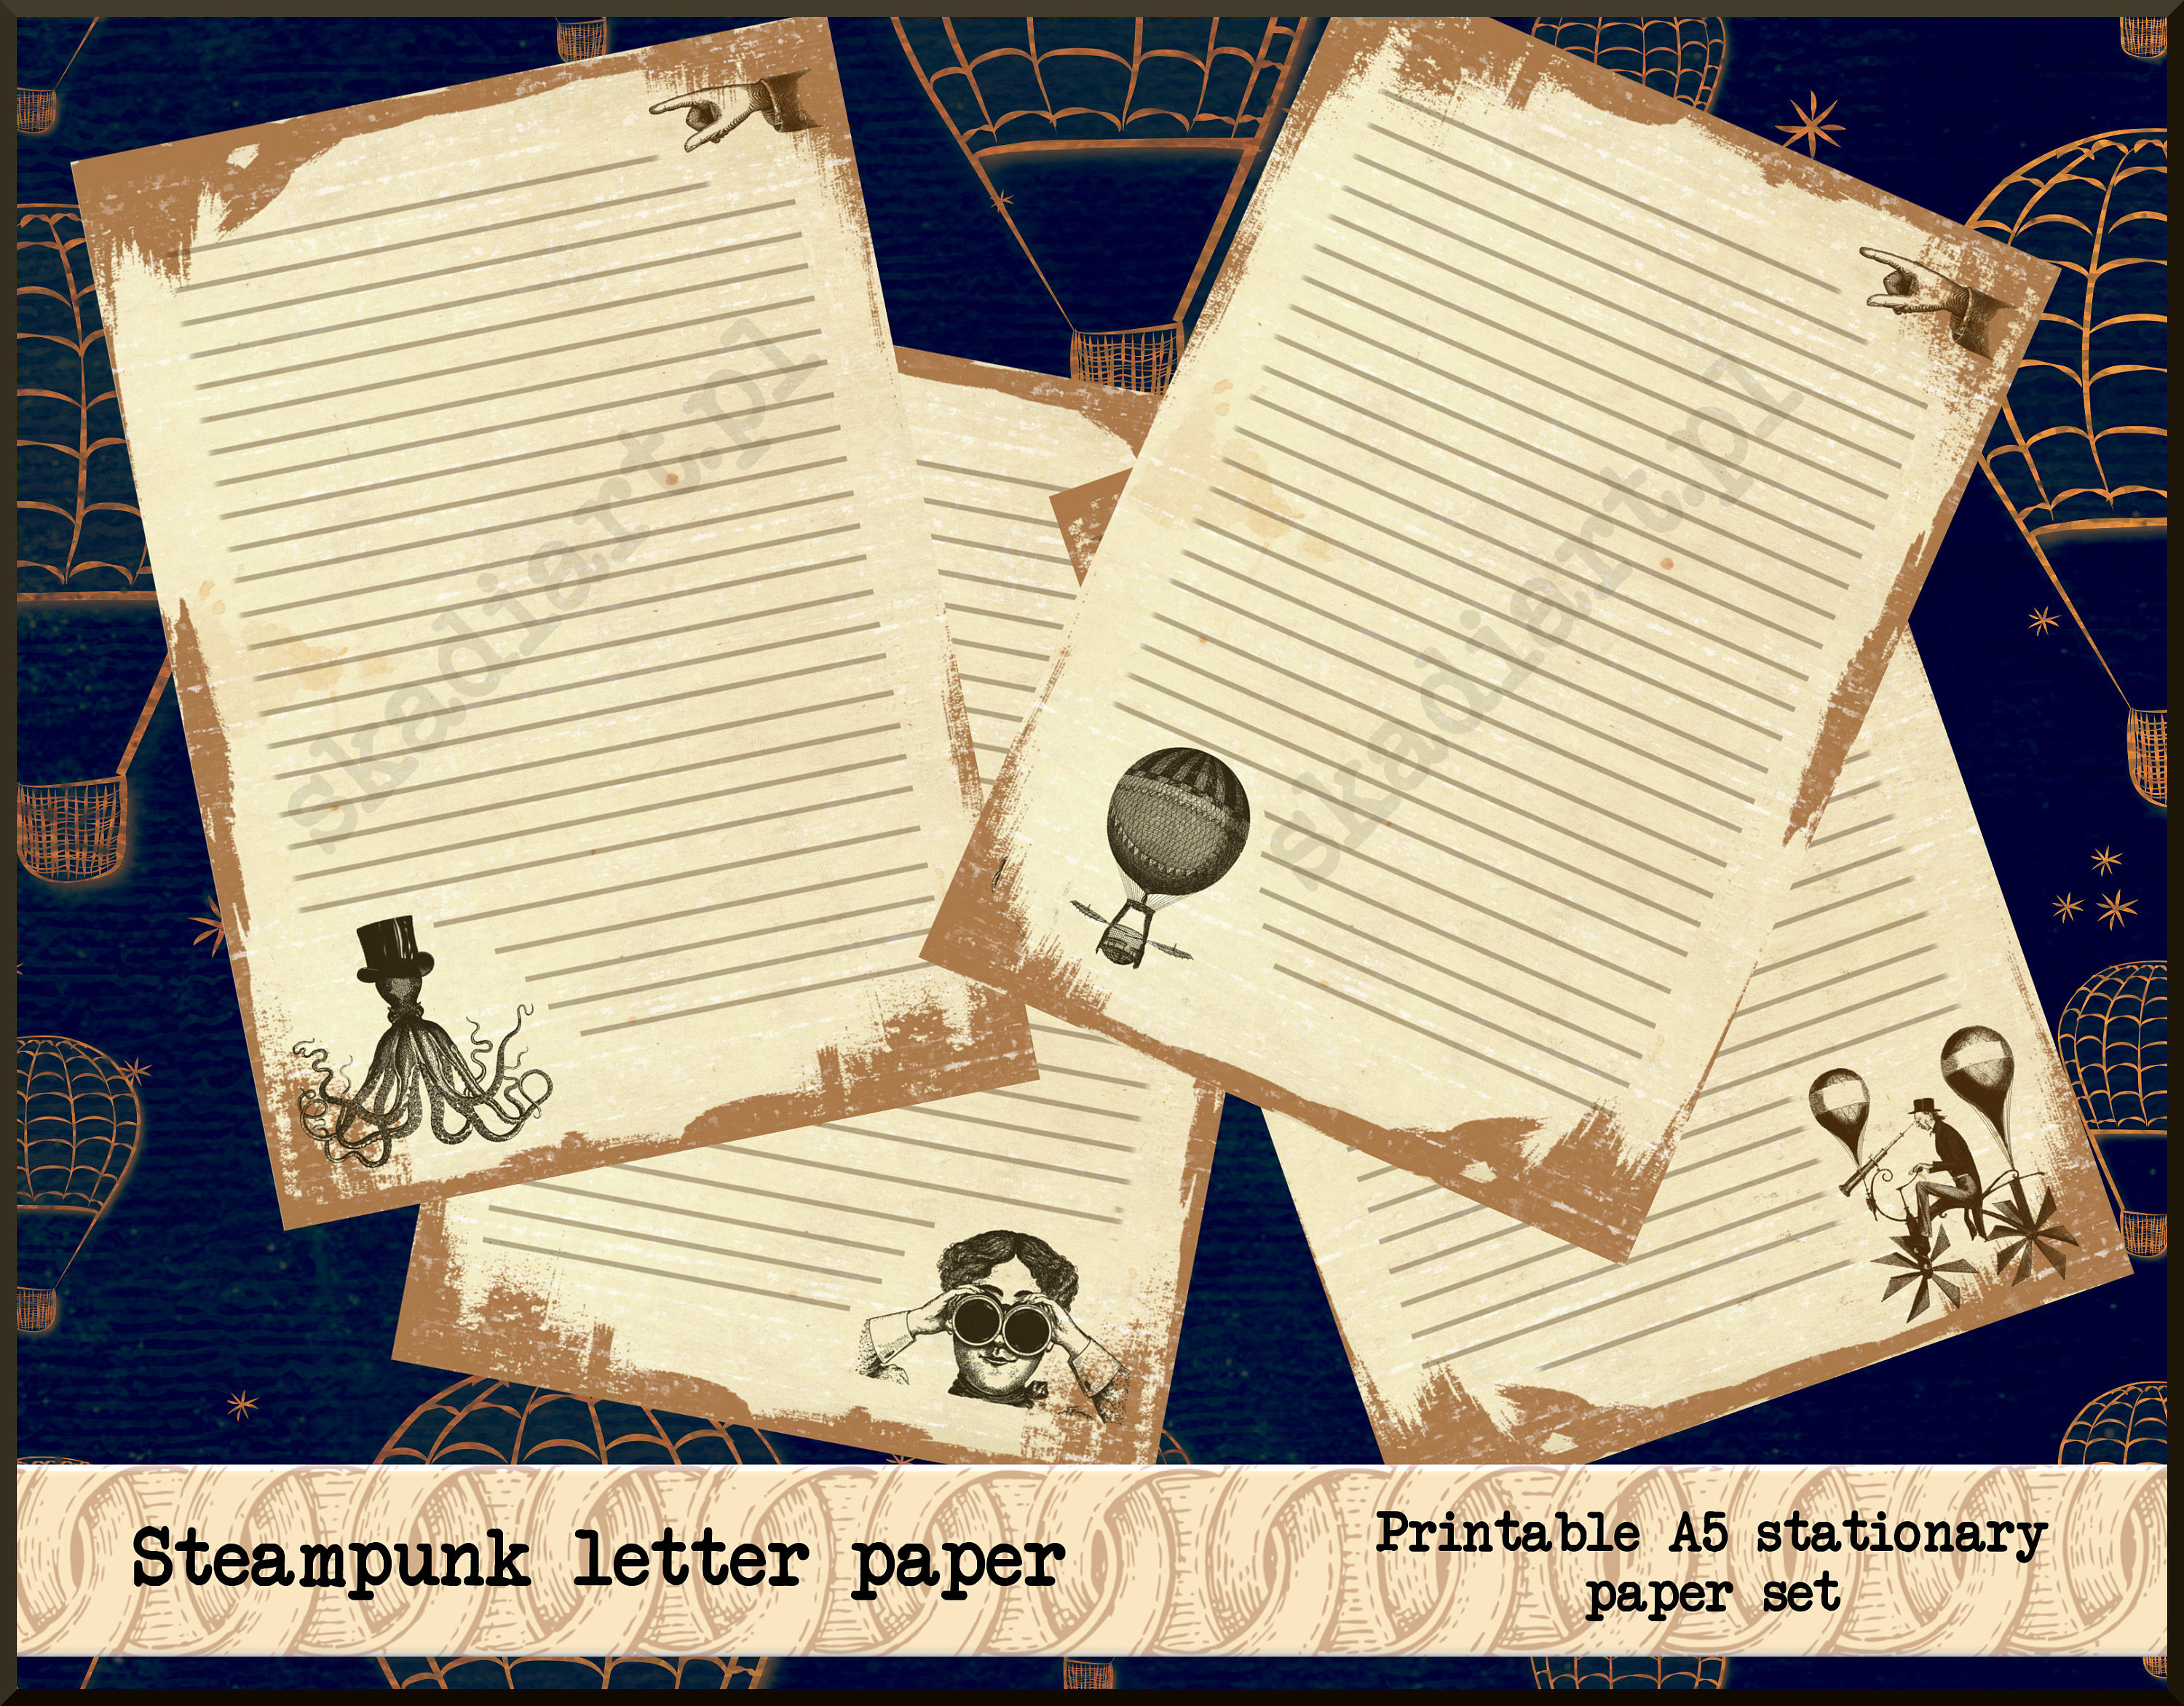 steampunk essay Steampunk is a subgenre of science fiction or science fantasy that incorporates technology and aesthetic designs inspired by 19th-century  essay from k w jeter.